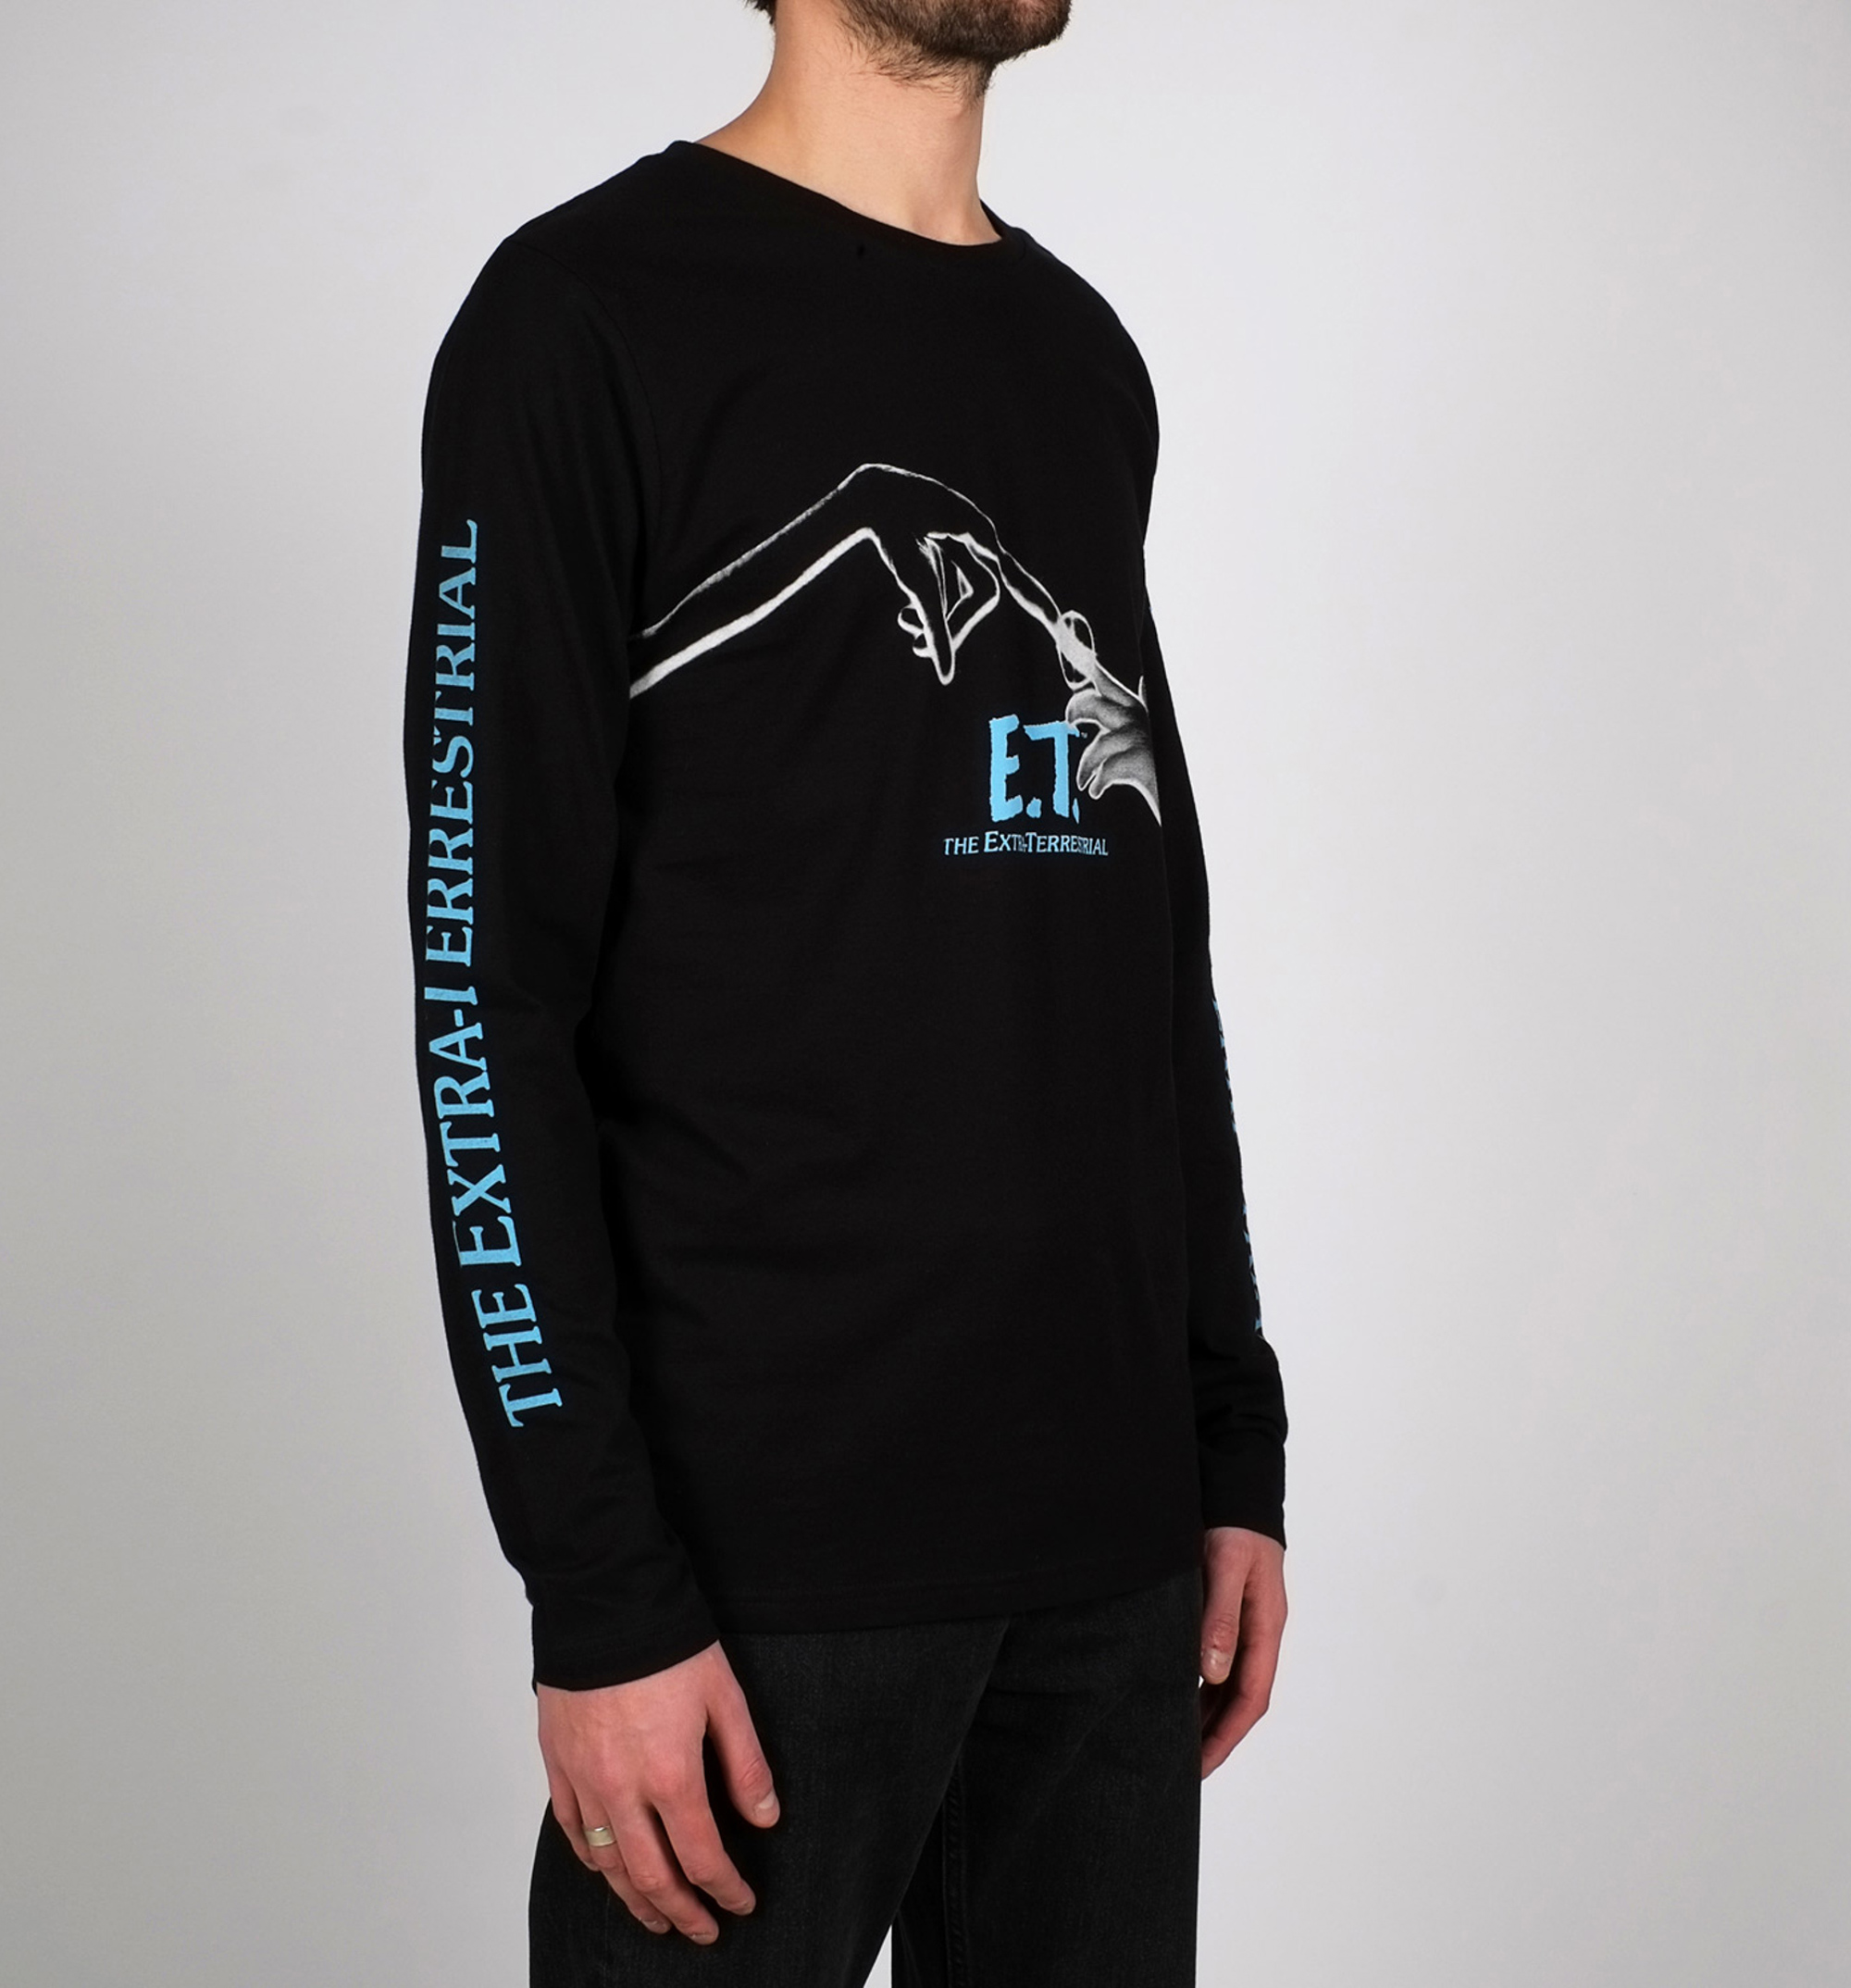 7bcb62602 Men's Black E.T. Long Sleeve T-Shirt from Dedicated - Classic fit men's tee  - Made from 100% organic, recycled Fairtrade-certified cotton